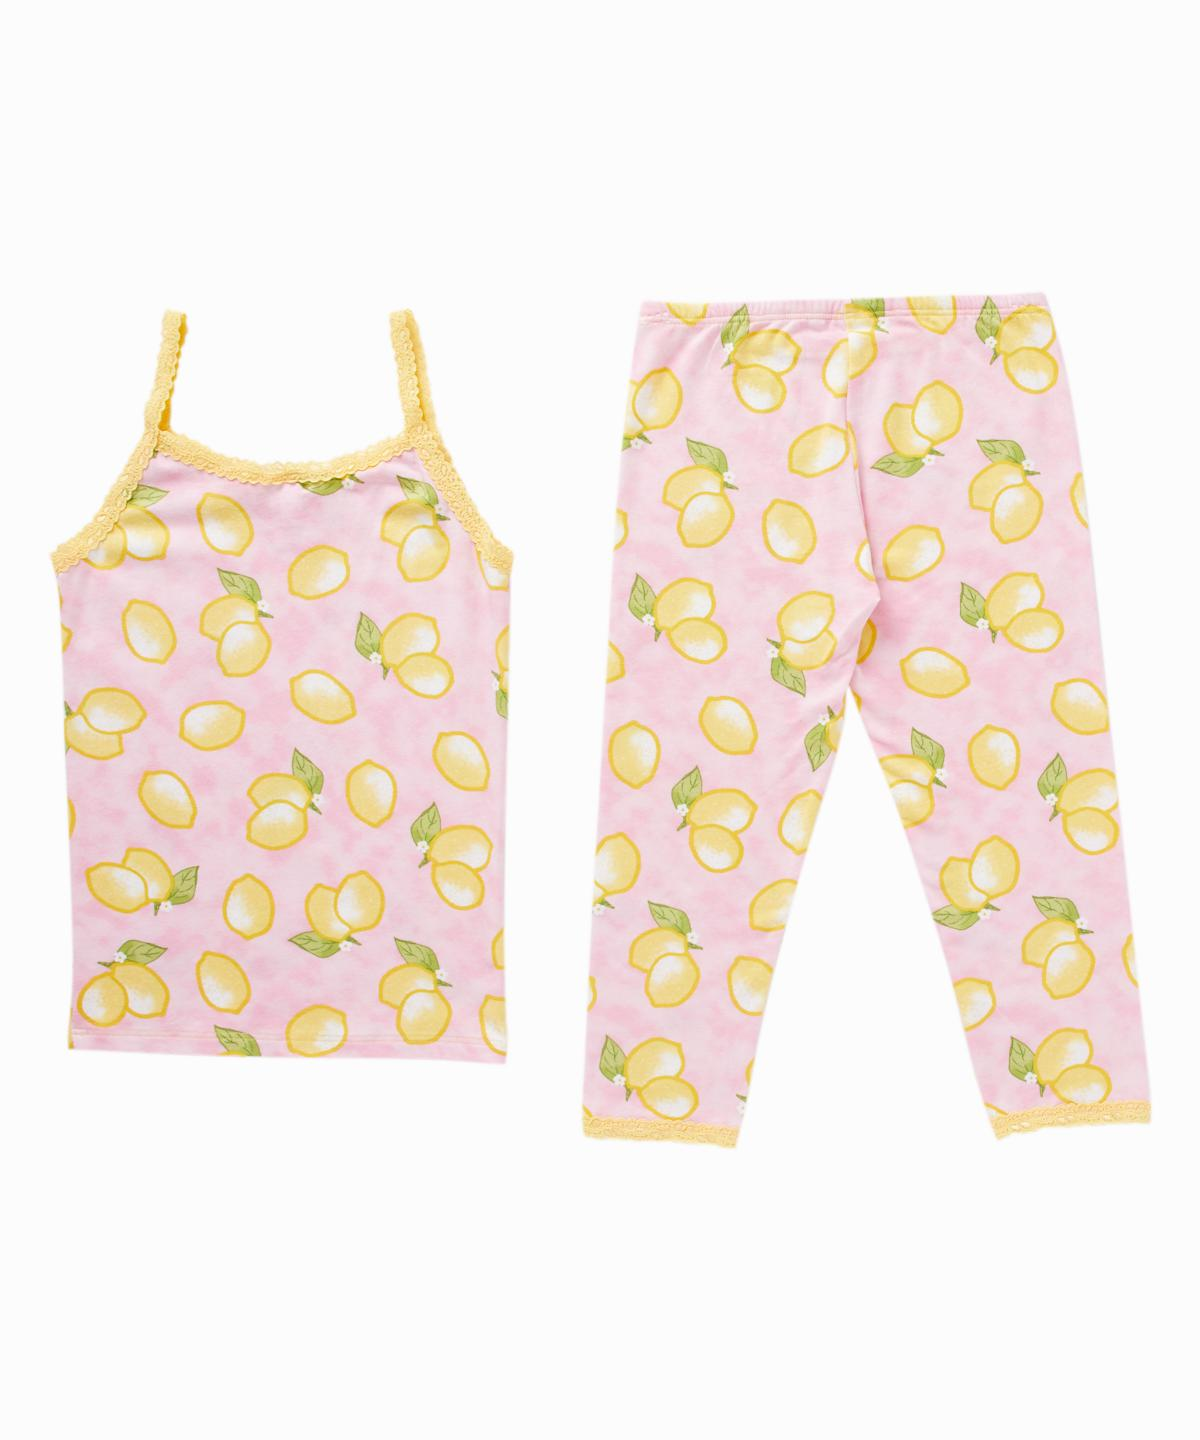 Lemon Print Cami/Leggings Pajama Set